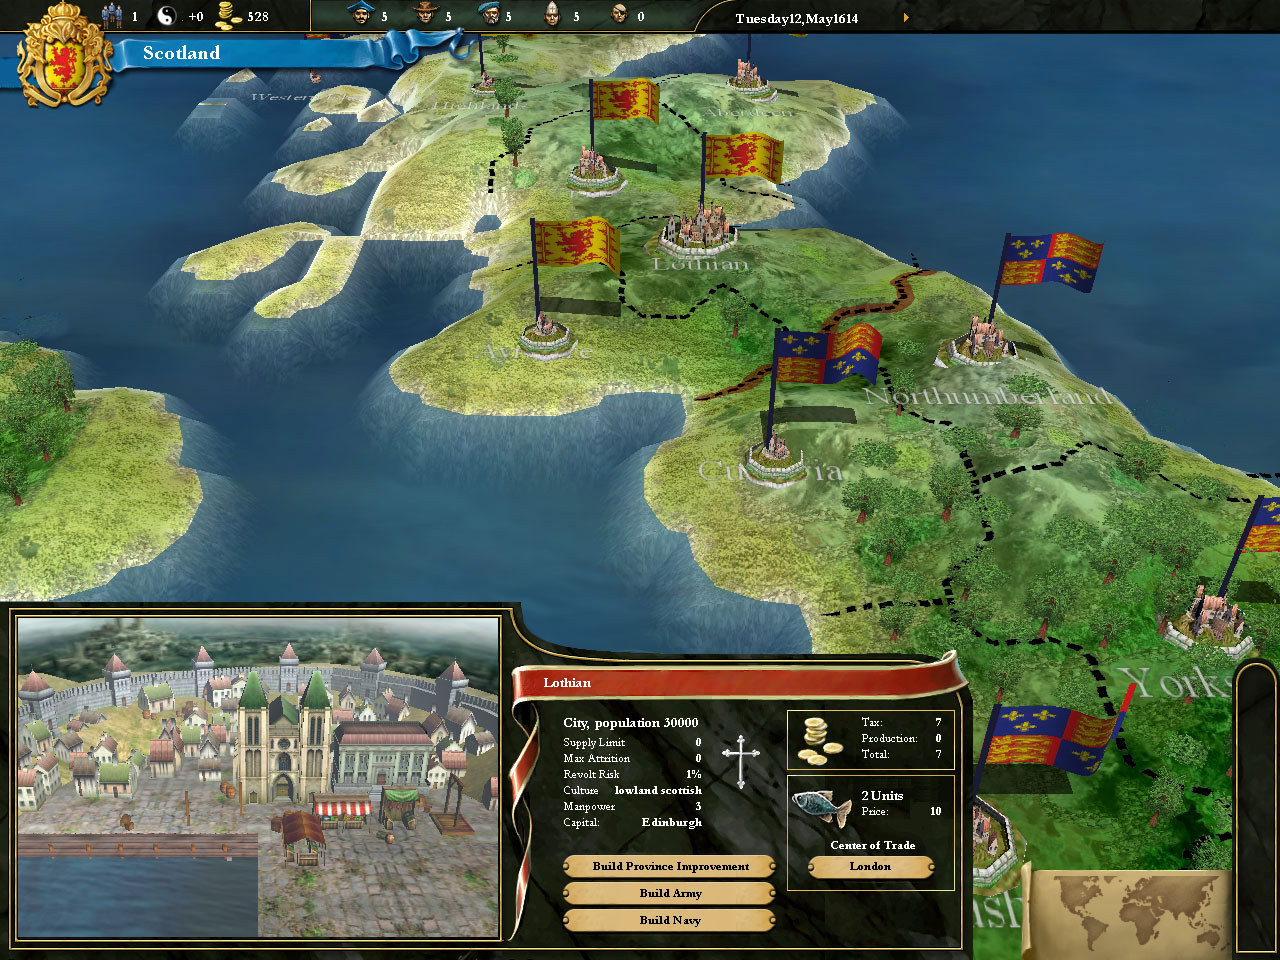 Europa Universalis IV The Cossacks Overview